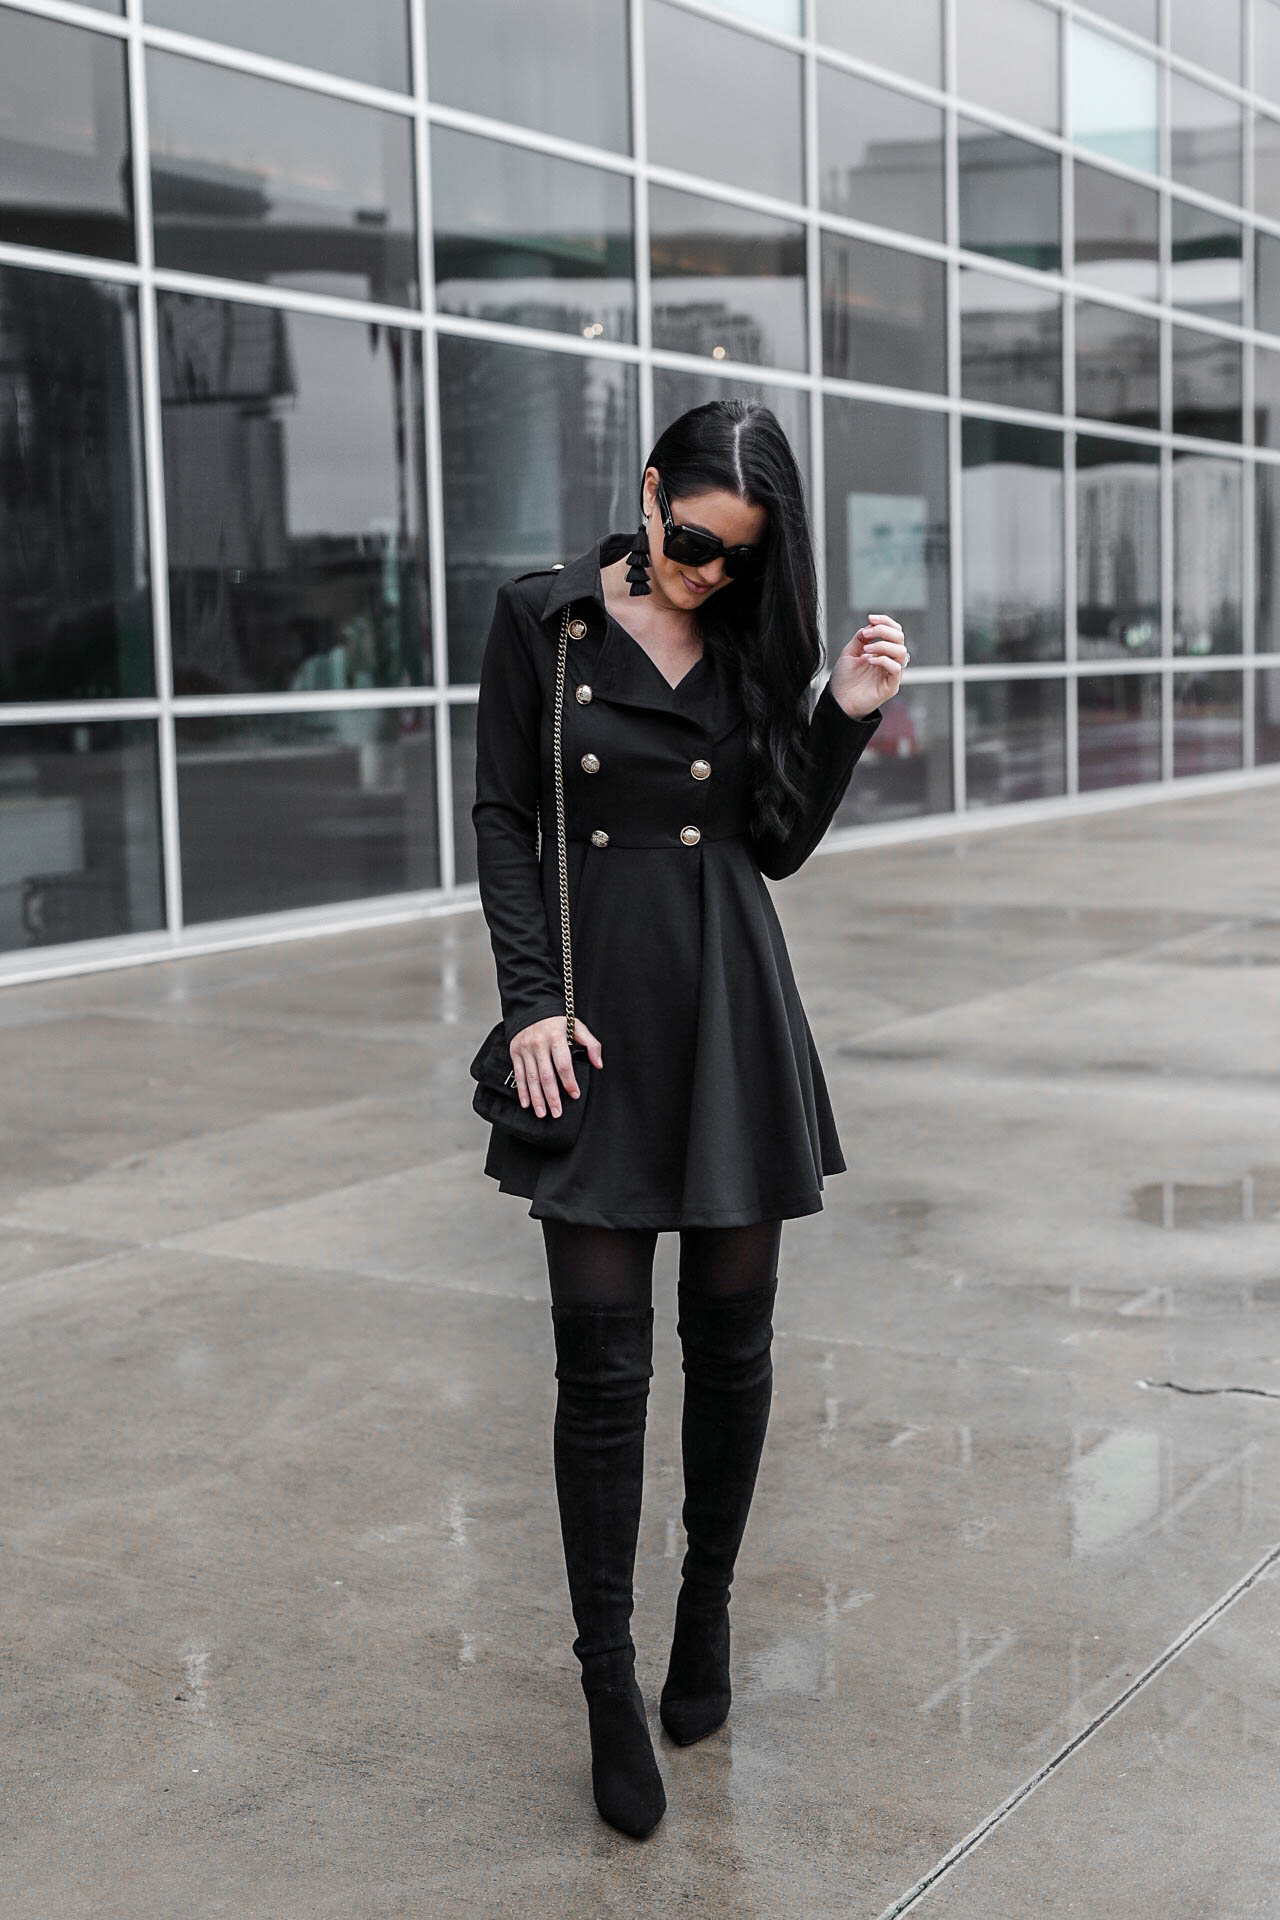 Tips on How to Wear a Black Trench Coat Dress | Dressed to Kill